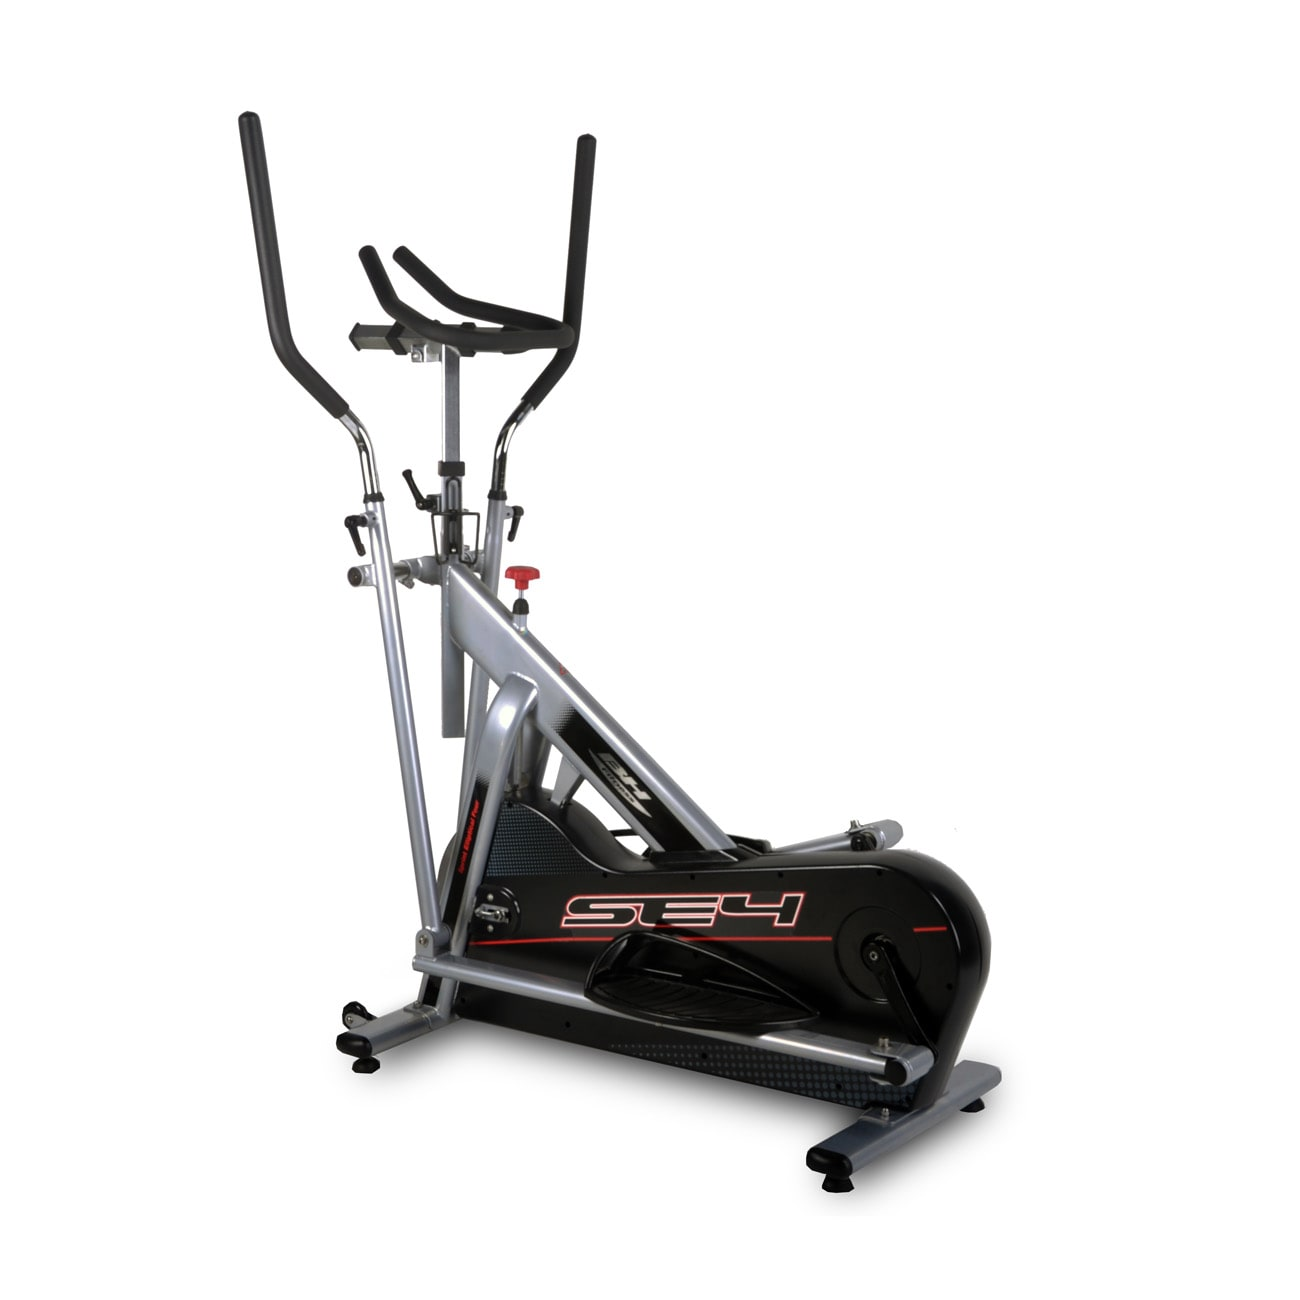 BH Fitness SE4 Elliptical Indoor Cycle Cross Trainer at Sears.com